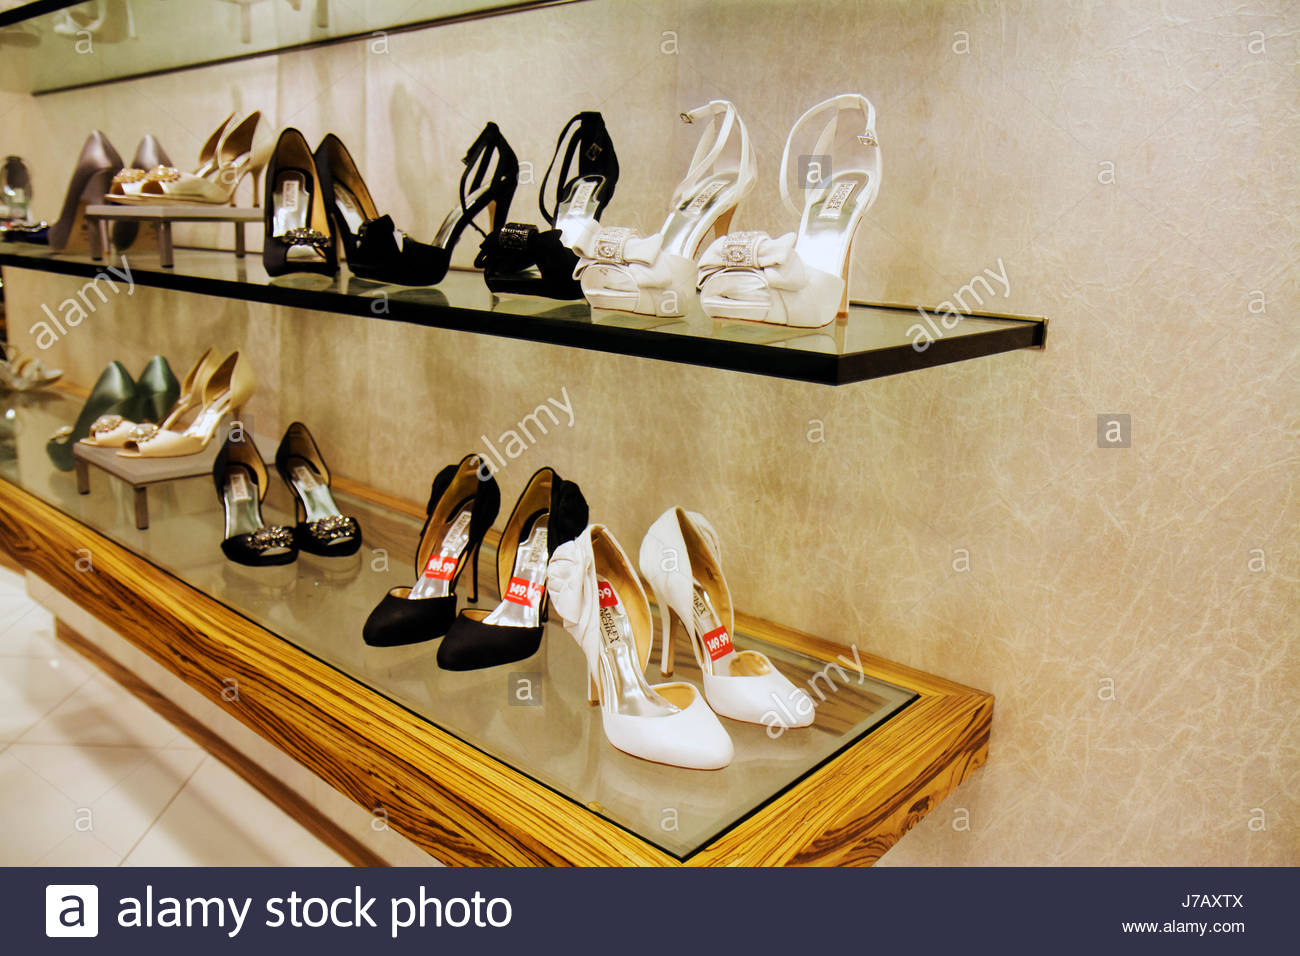 Miami Florida Dadeland Mall Macy's Department Store shopping for sale retail display fashion shoes women's - Stock Image